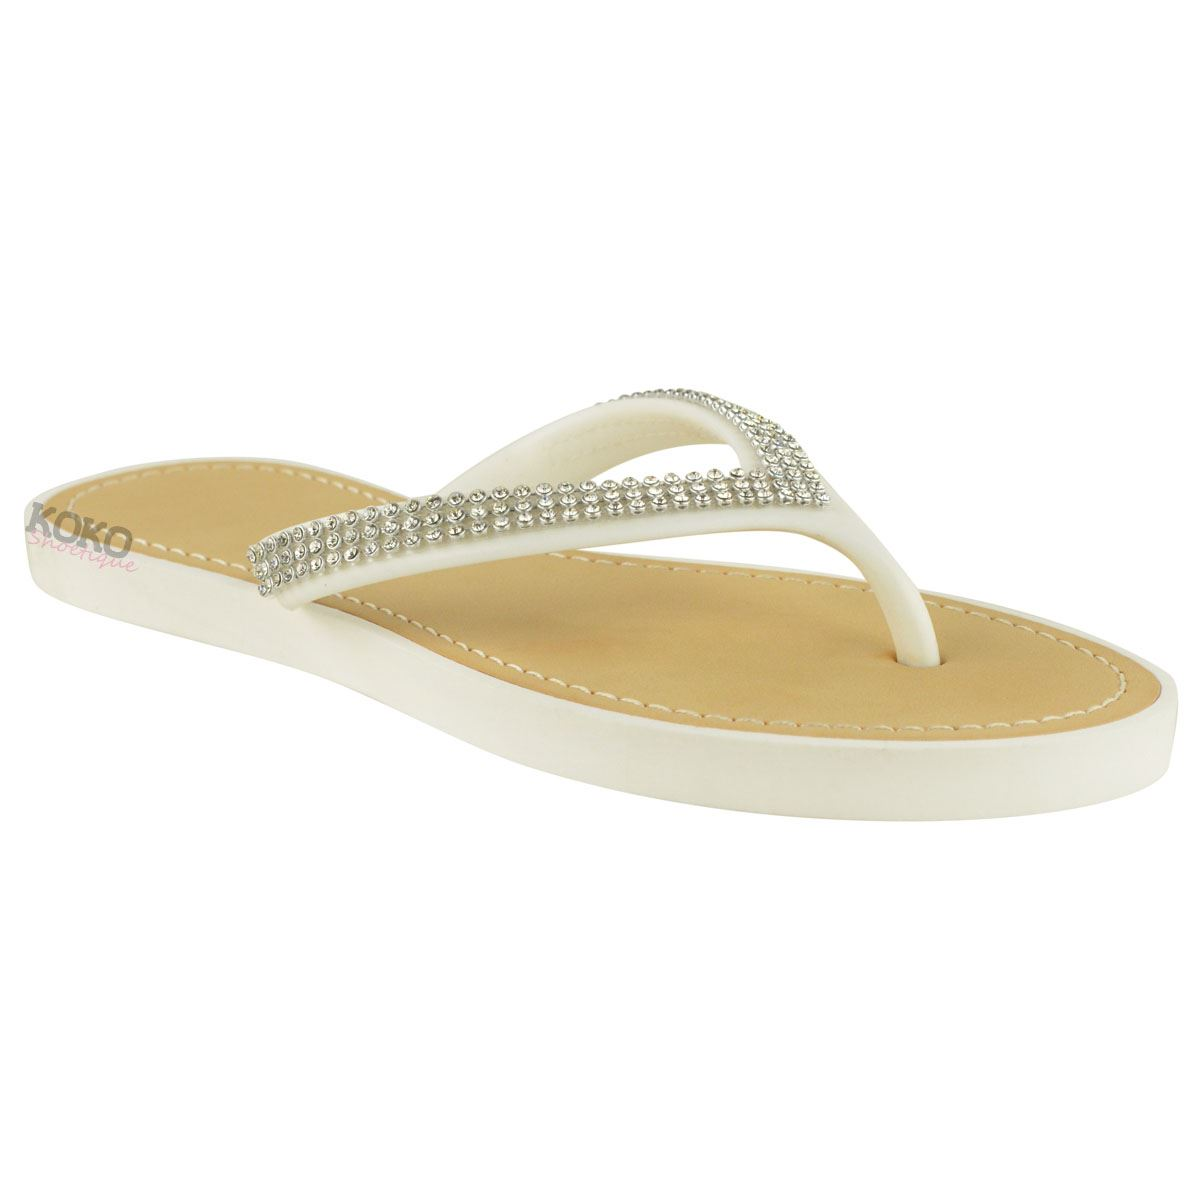 NEW-JELLY-SANDALS-WOMENS-LADIES-DIAMANTE-SUMMER-HOLIDAY-COMFORTS-FLIP-FLOPS-SIZE thumbnail 33